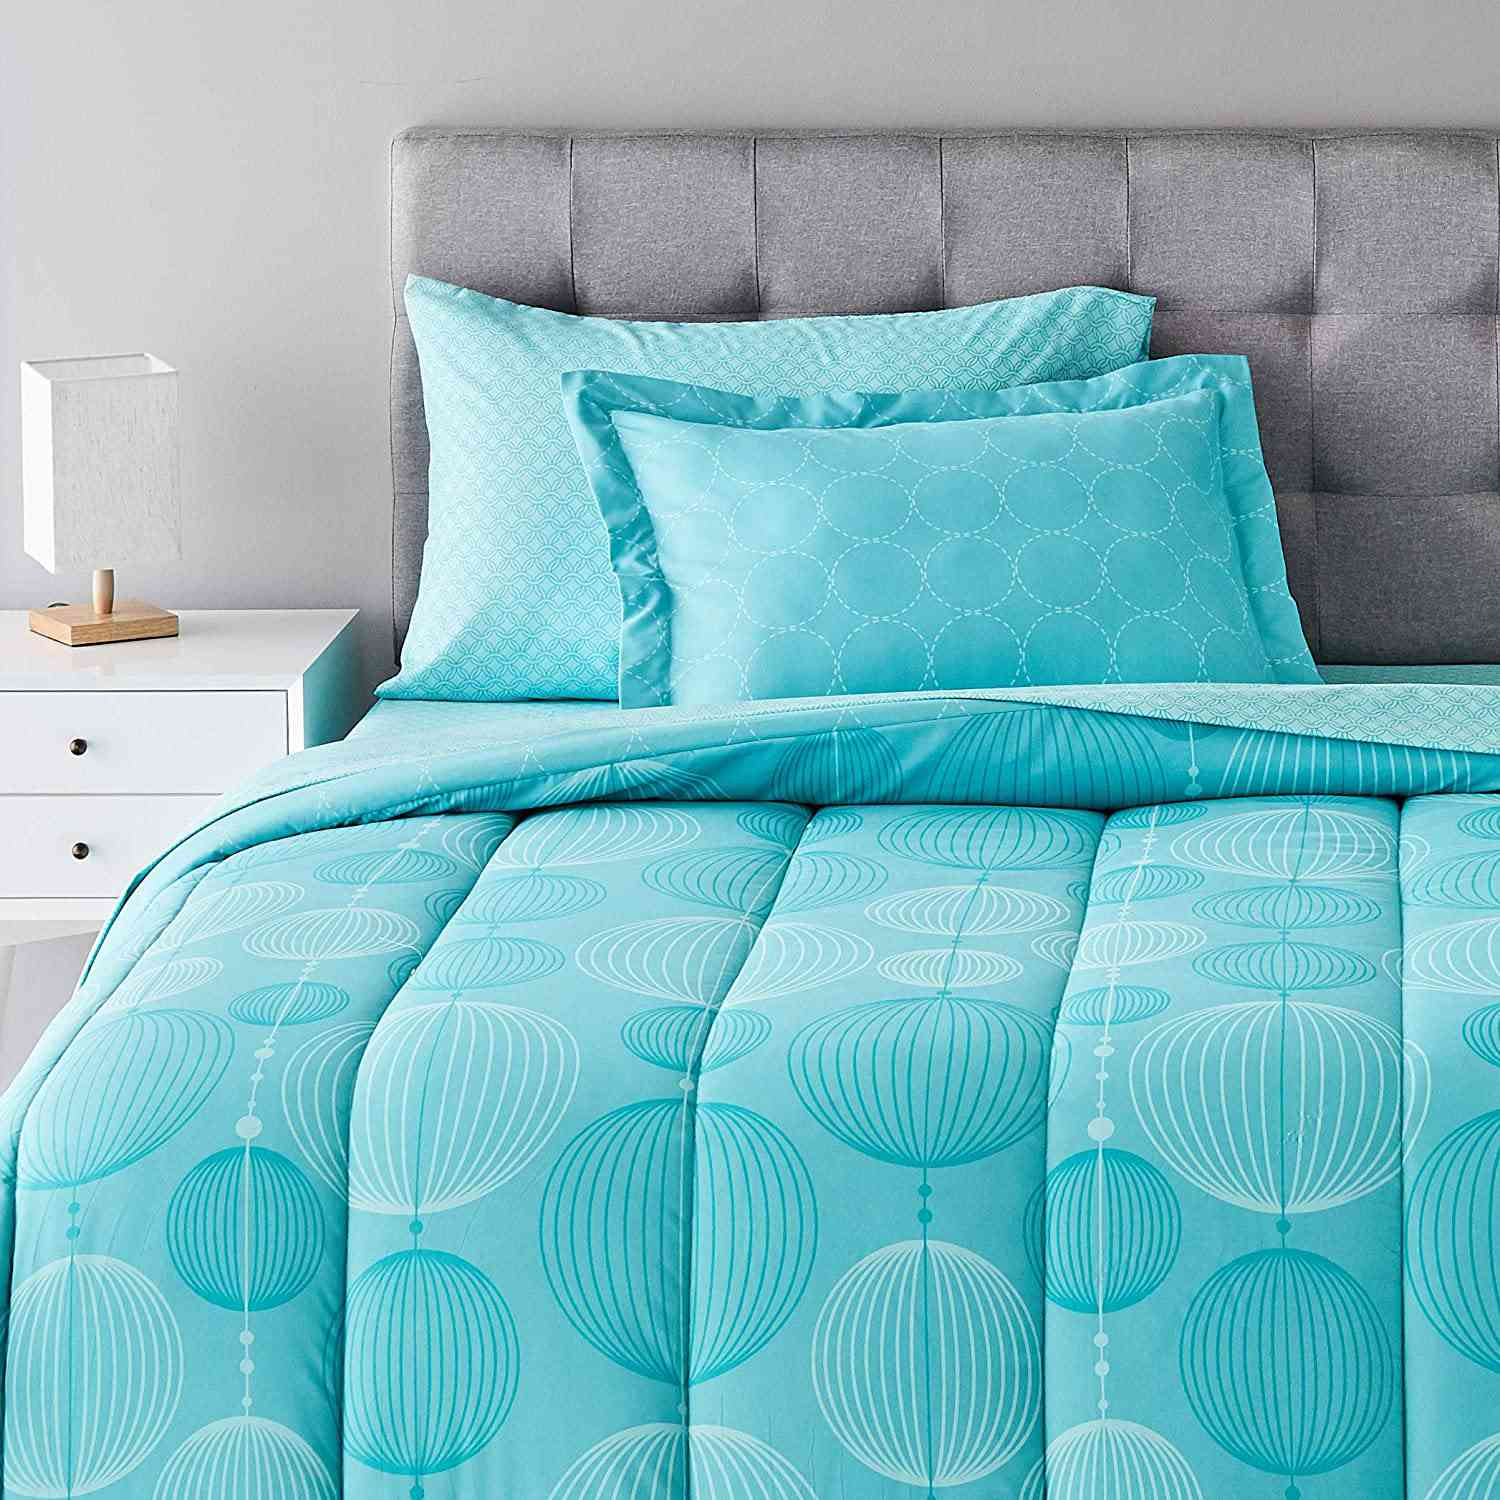 AmazonBasics 5-Piece Bed-In-A-Bag Comforter Bedding Set